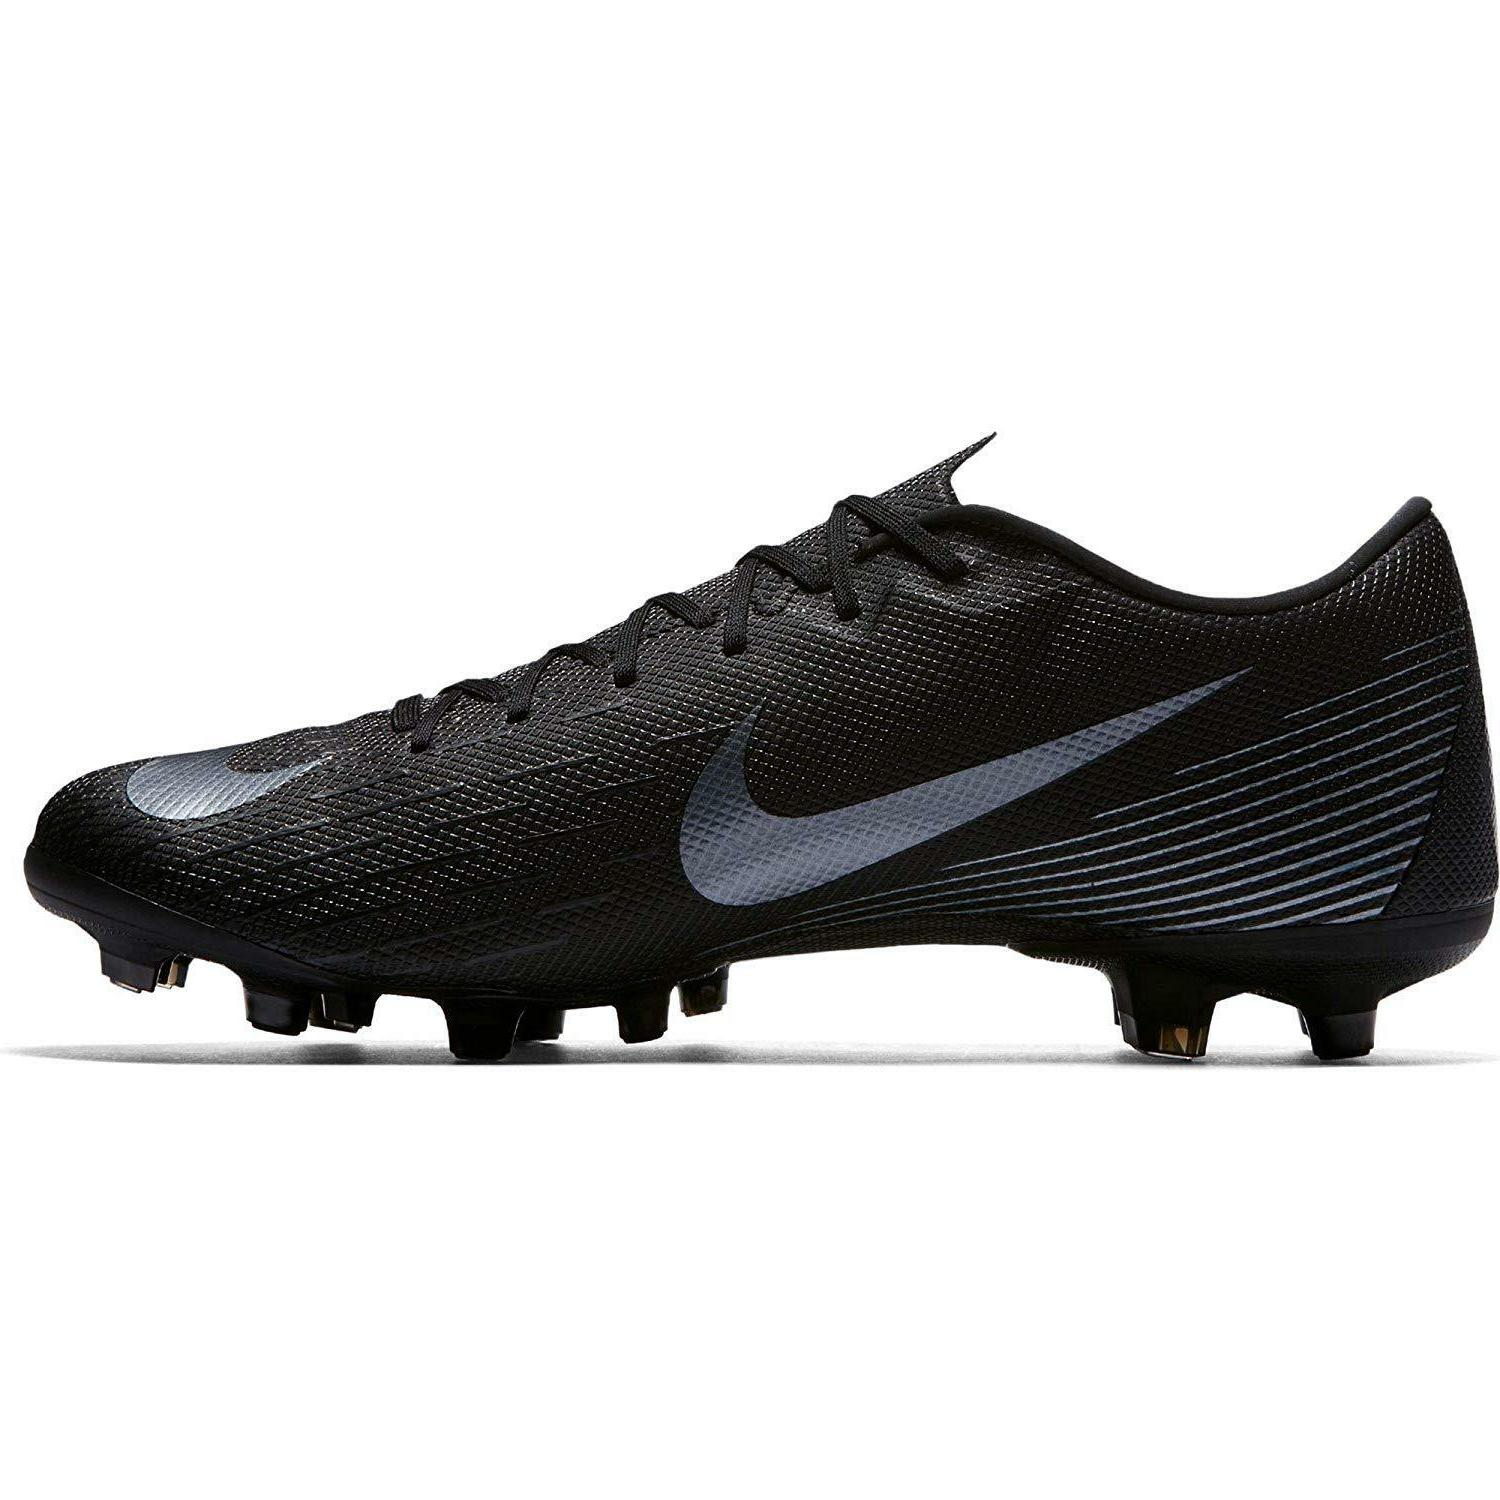 NIKE Men's Academy Soccer Cleat